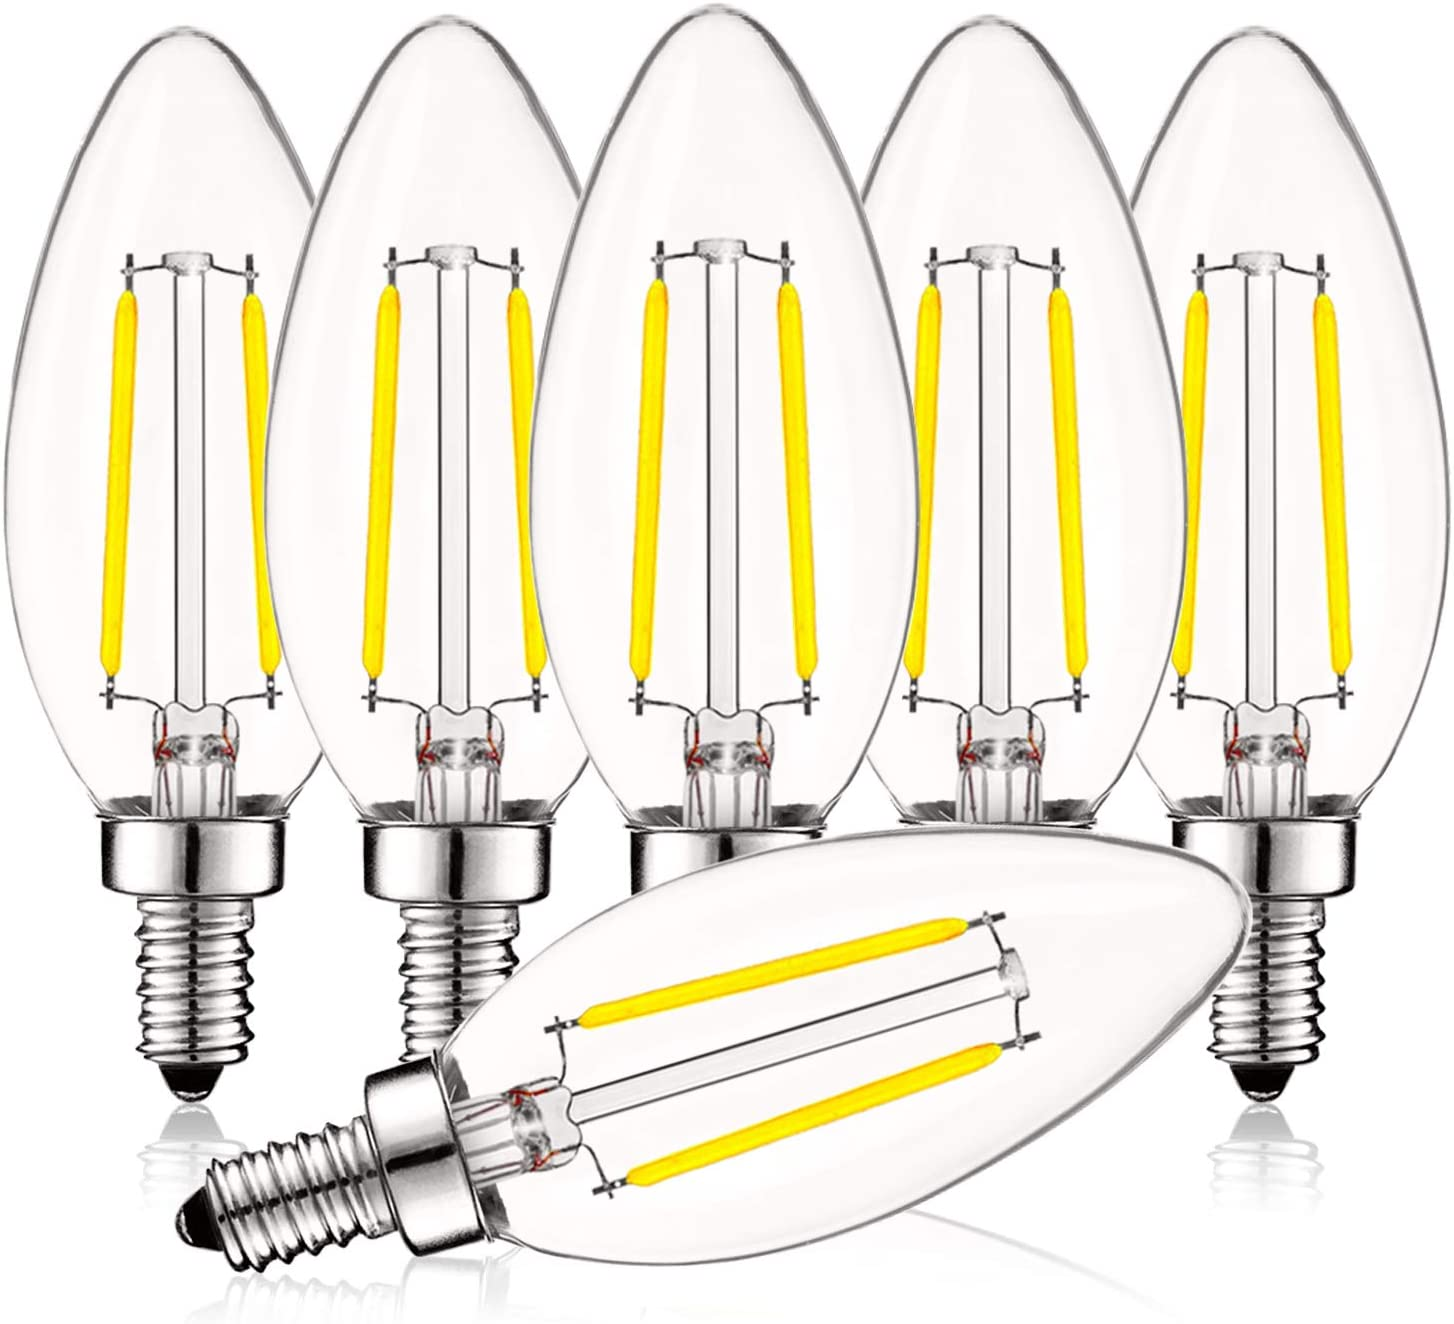 Luxrite 4W Vintage Candelabra LED Bulbs Dimmable, 400 Lumens, 5000K Bright White, LED Chandelier Light Bulbs 40W Equivalent, Clear Glass, Filament LED Candle Bulb, UL Listed, E12 Base (6 Pack) - -